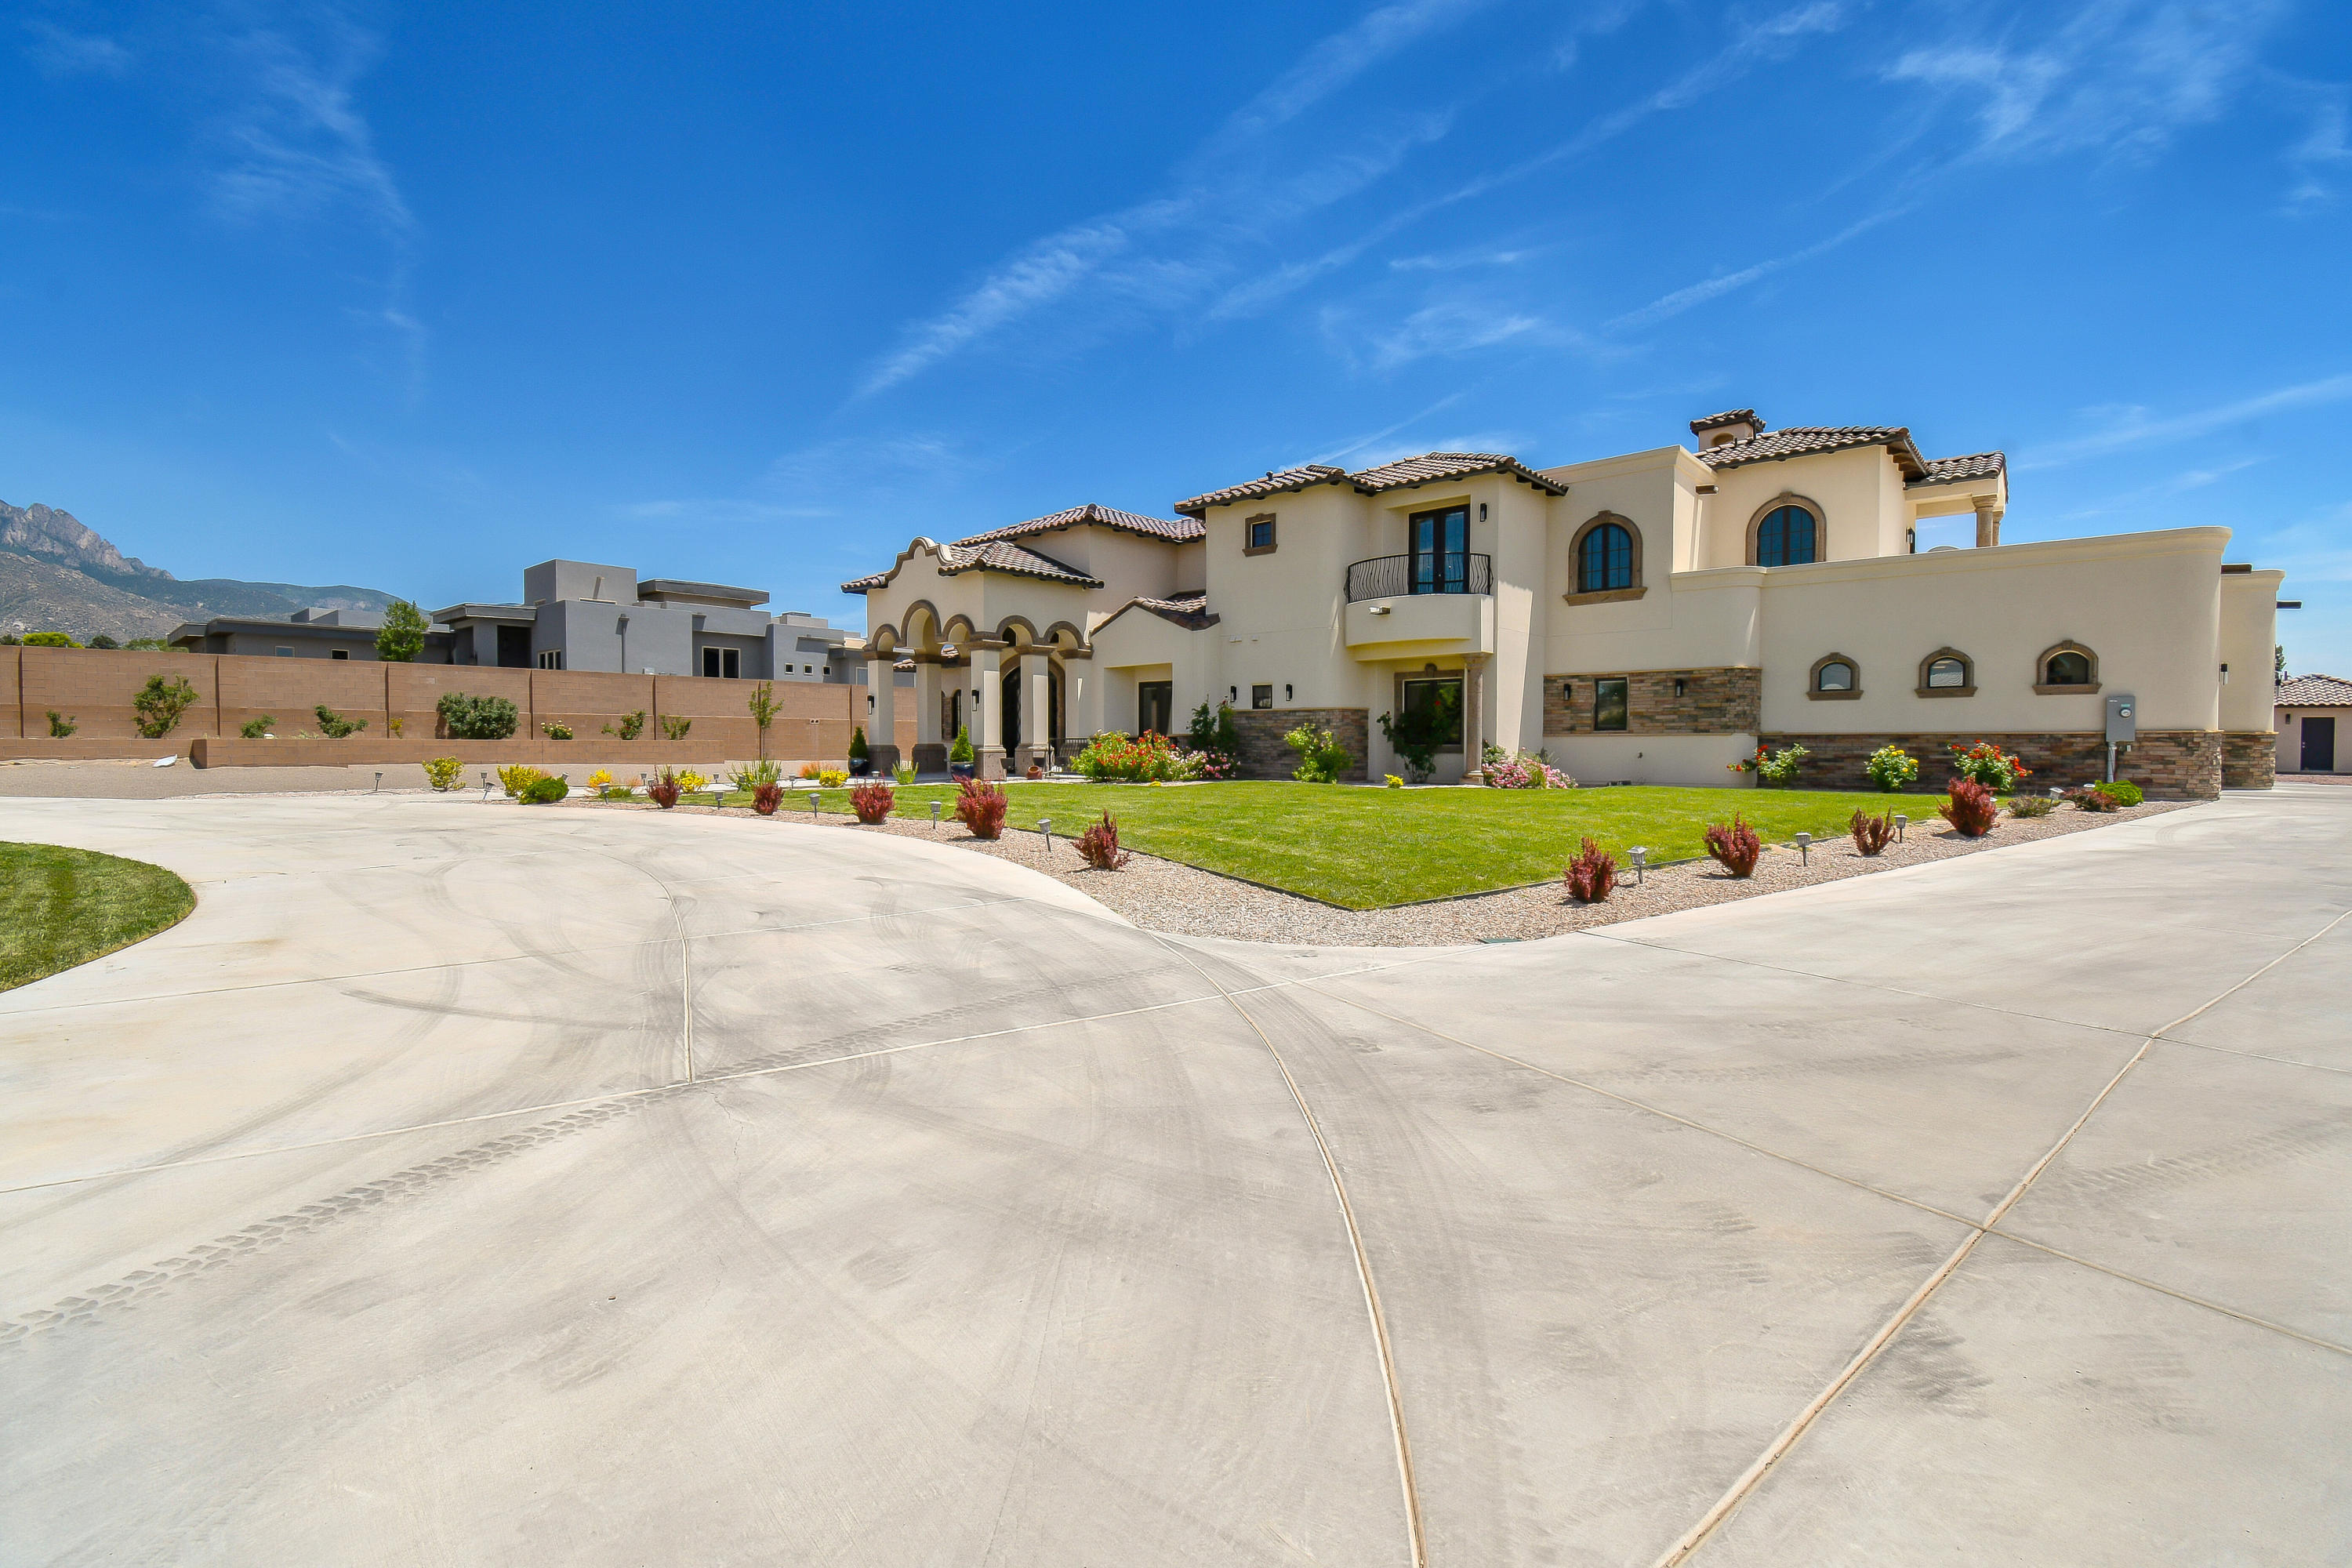 This pristine home blends Tuscan-style architecture with contemporary interior design. Designed and built without compromises, it sits in the shadow of the Sandia Mountains in one of Albuquerque's most desirable locations. From the sun-splashed grand foyer to the 5 ensuite bedrooms with balconies, the home is filled with light - accentuated by artistic fixtures throughout. A modern chef's kitchen is bold and beautiful, while the state-of-the-art media room and wet bar are perfect for relaxing. Space abounds, with generous walk-ins and a 4-car garage. Entertaining? The huge covered patio includes an outdoor kitchen, and the pump house is ready for a pool! For families that love life both indoors and out, this unique home is both your sanctuary and your gateway to the New Mexico lifestyle.